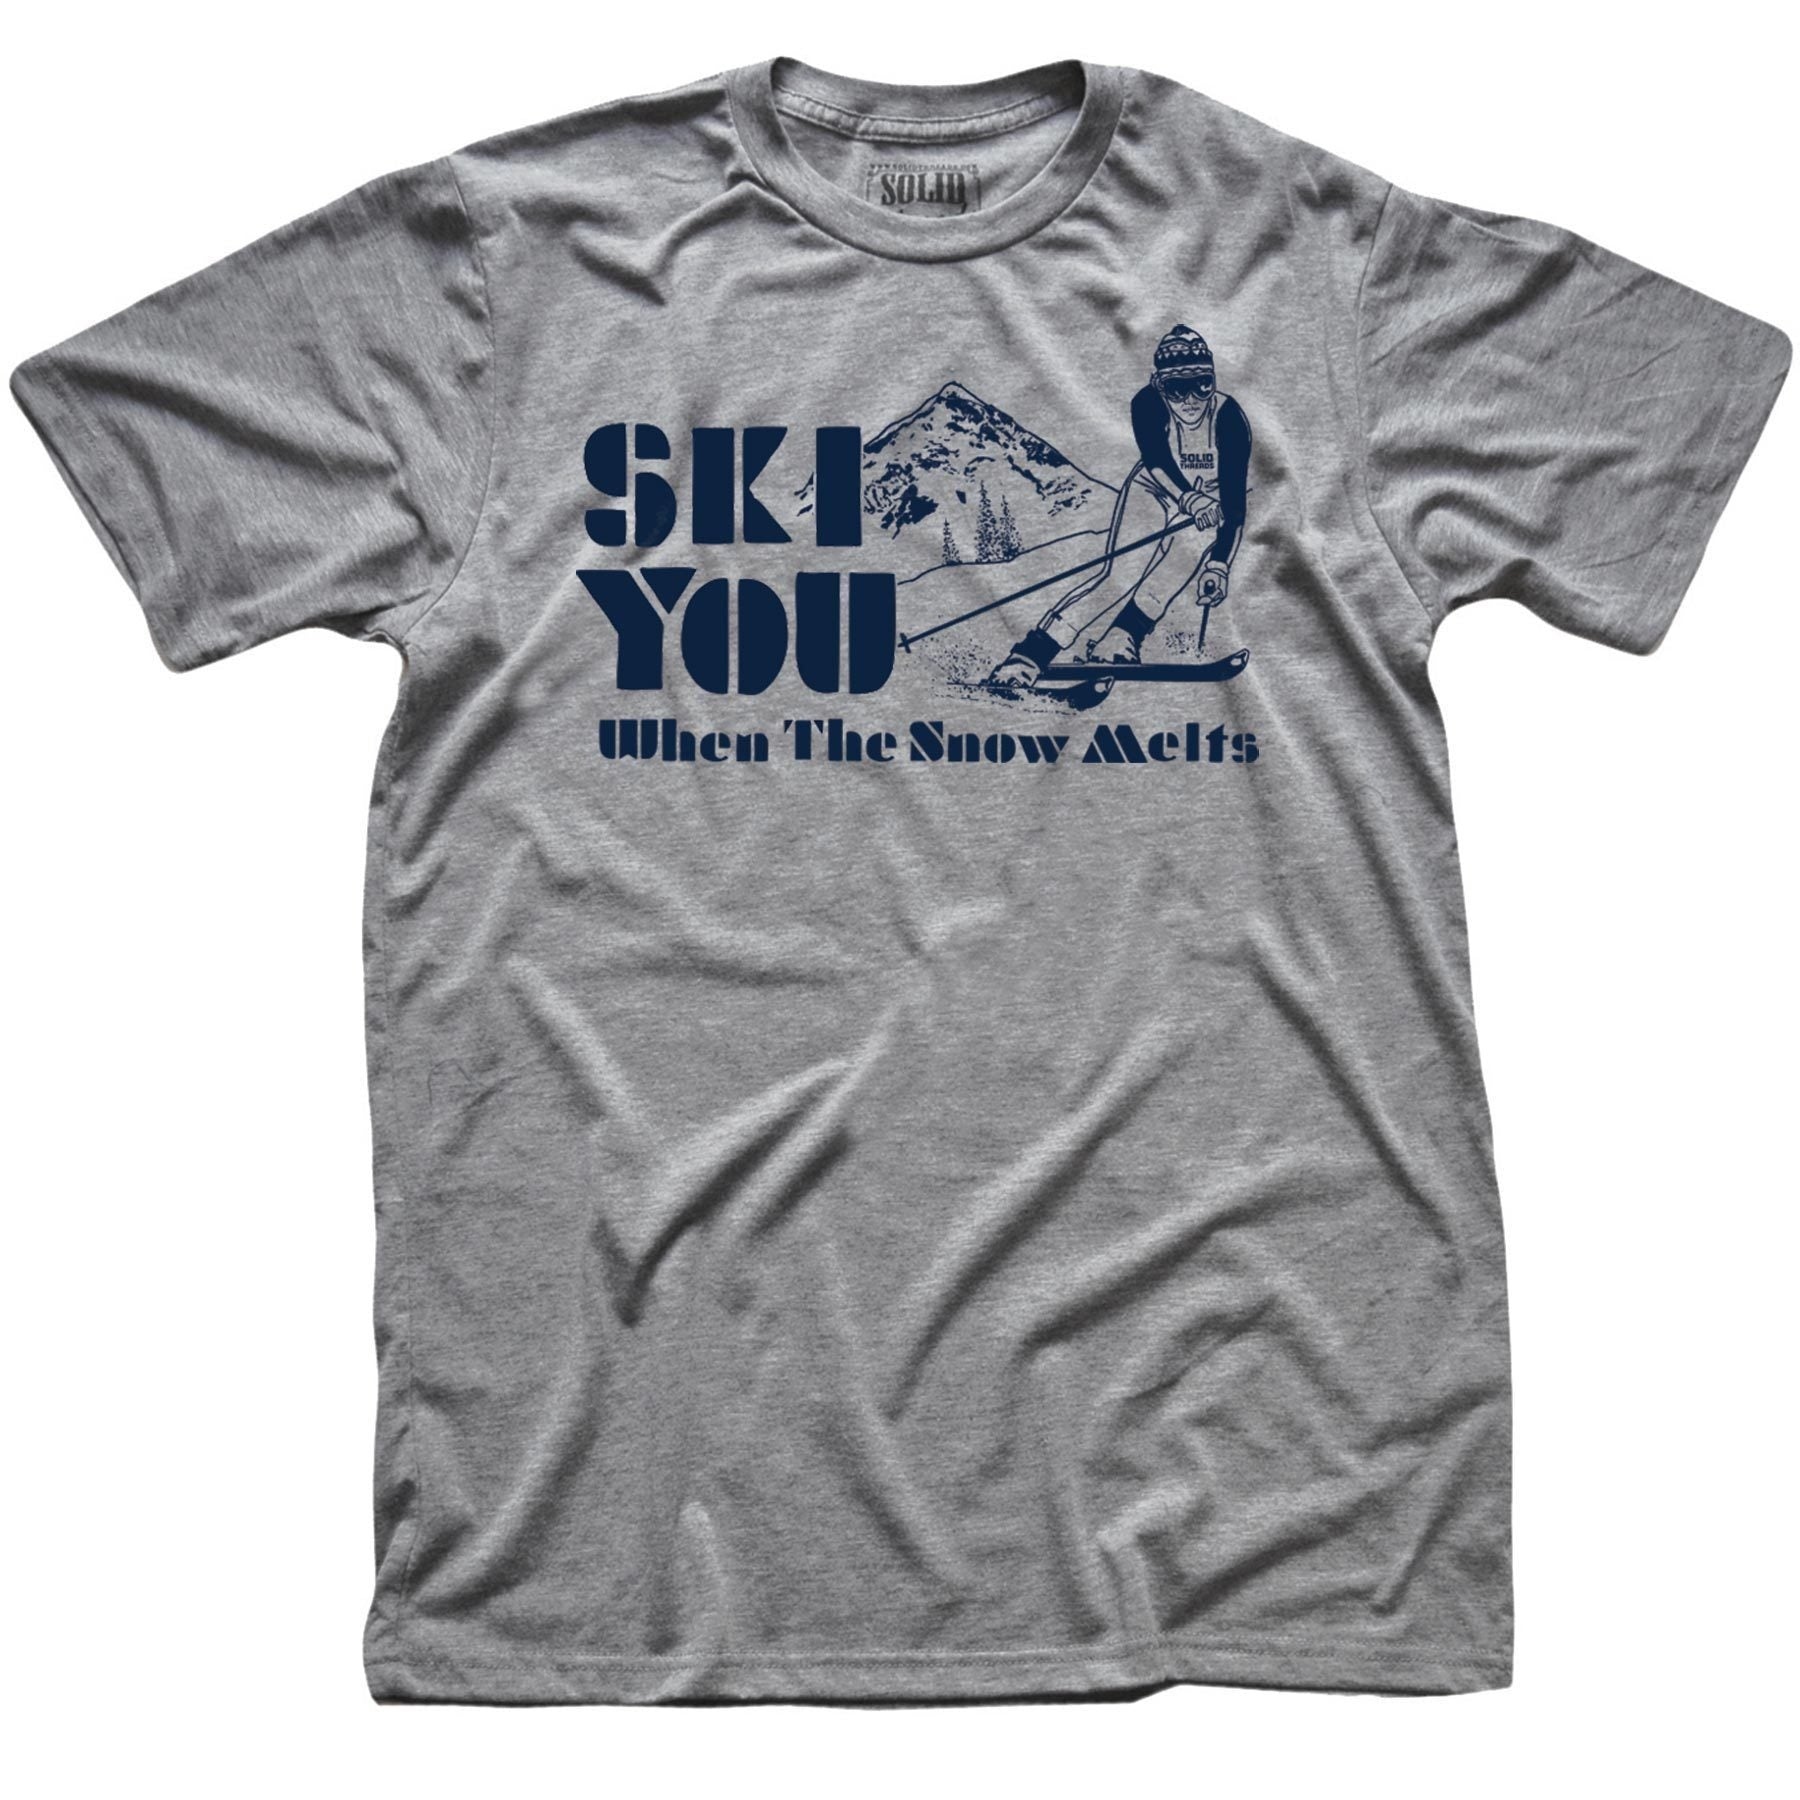 Ski You When The Snow Melts Vintage Inspired T-shirt | SOLID THREADS